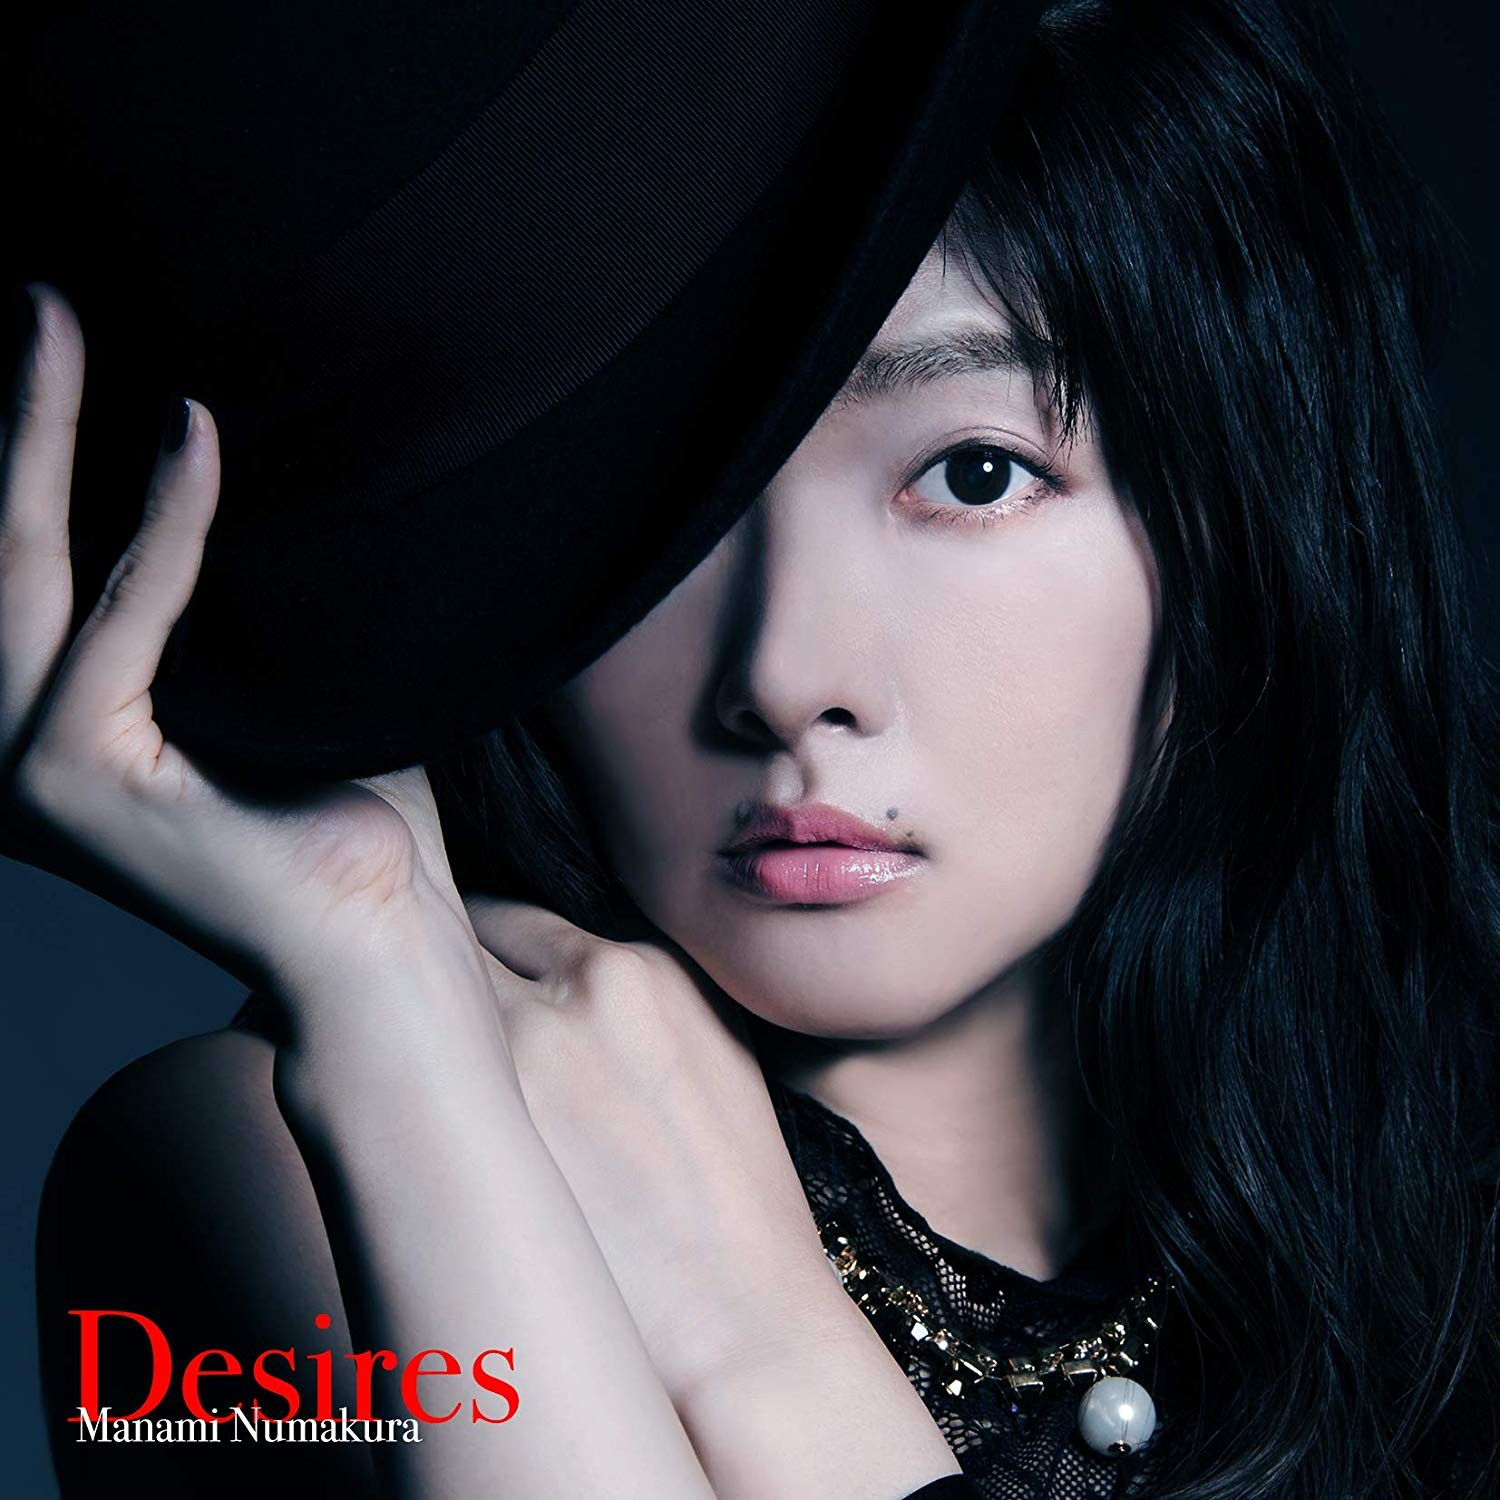 沼倉愛美 (Manami Numakura) – Desires [FLAC + MP3 320 / CD] [2018.10.31]